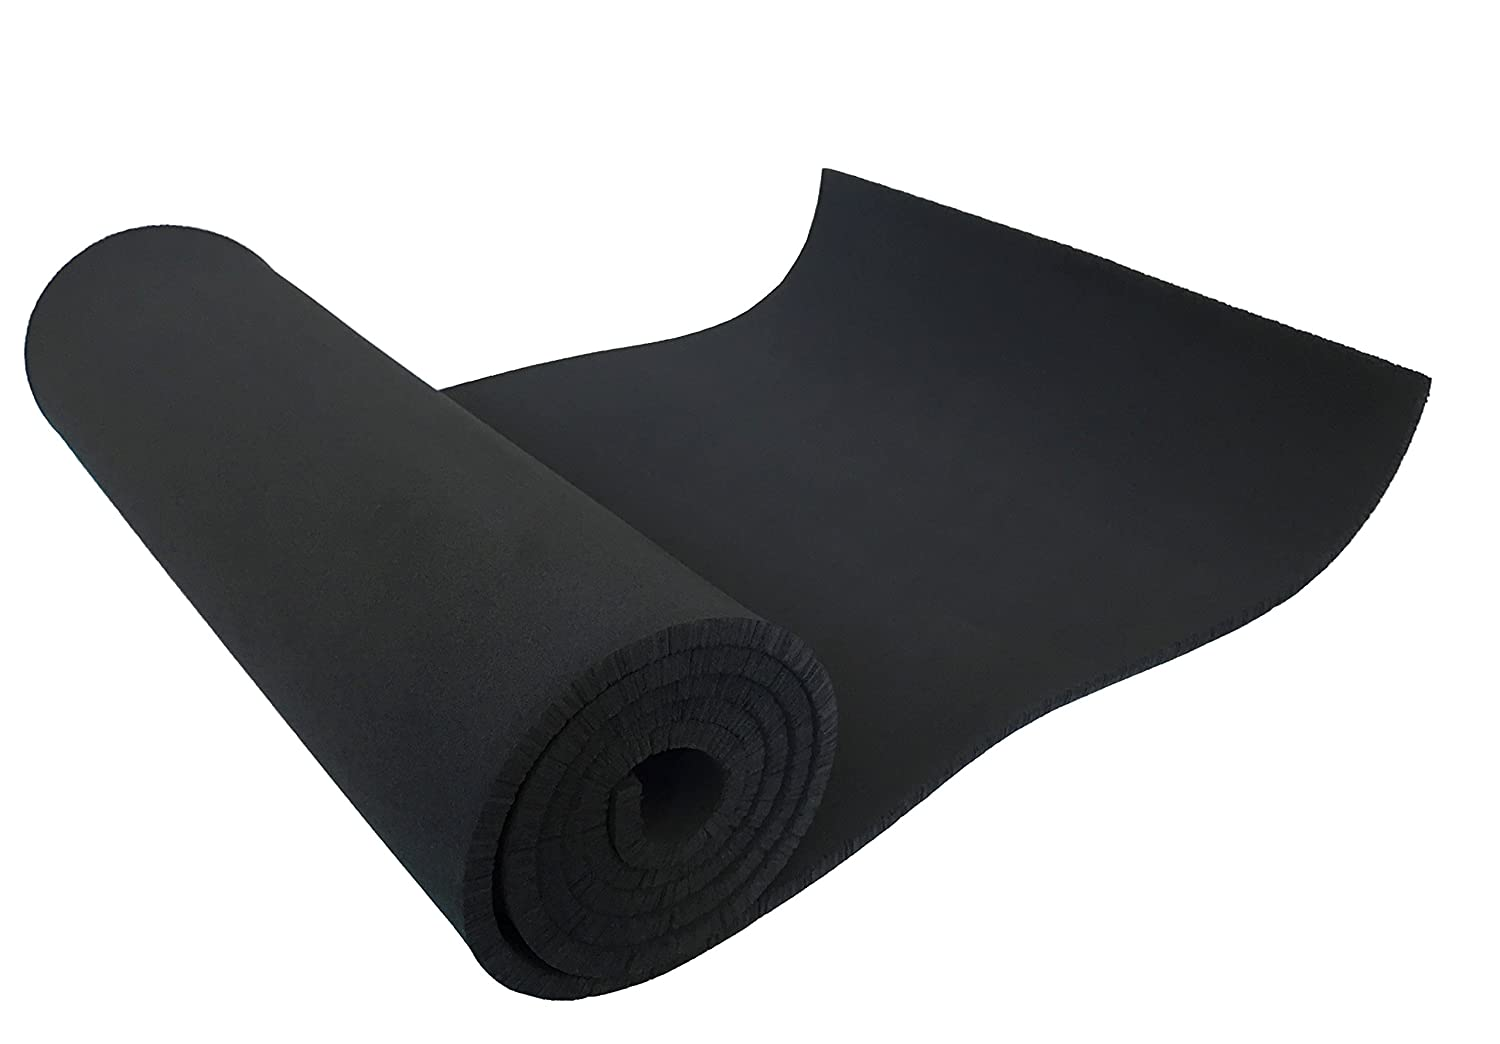 XCEL Neoprene Foam Sheet 54 Wide x 12 Length x 1 4 Soft Medium for Cosplay Costume Padding DIY and Gaskets